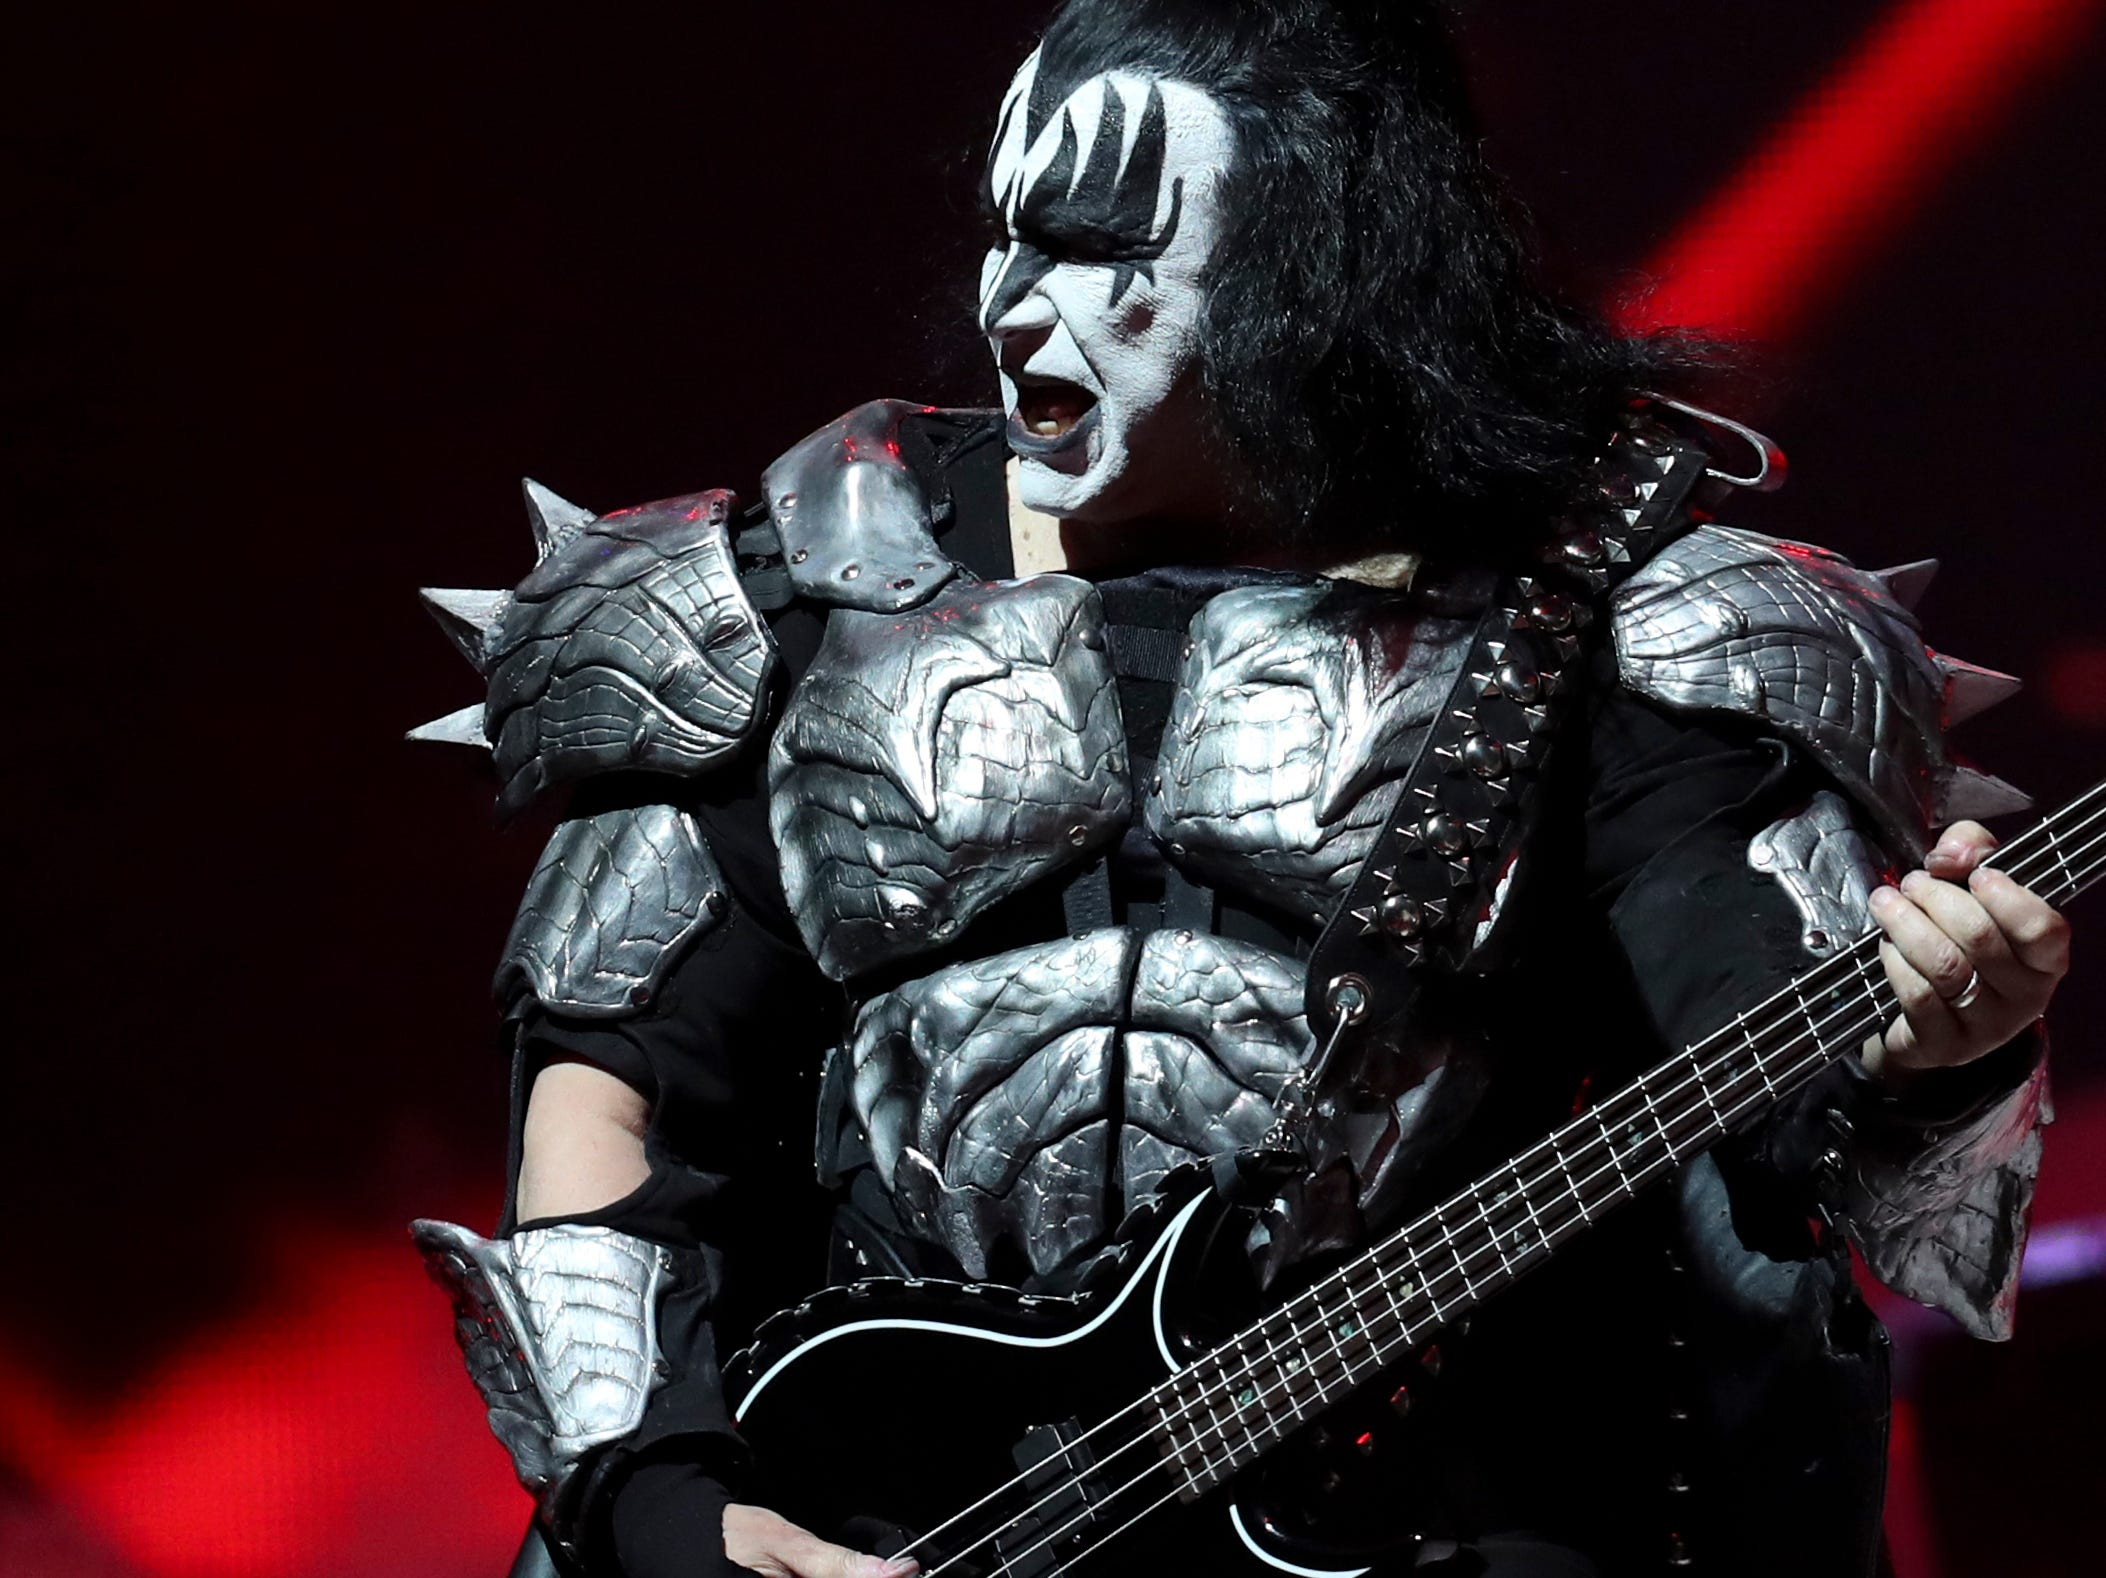 Gene Simmons of KISS entertains the crowd at the KFC Yum Center on March 12.